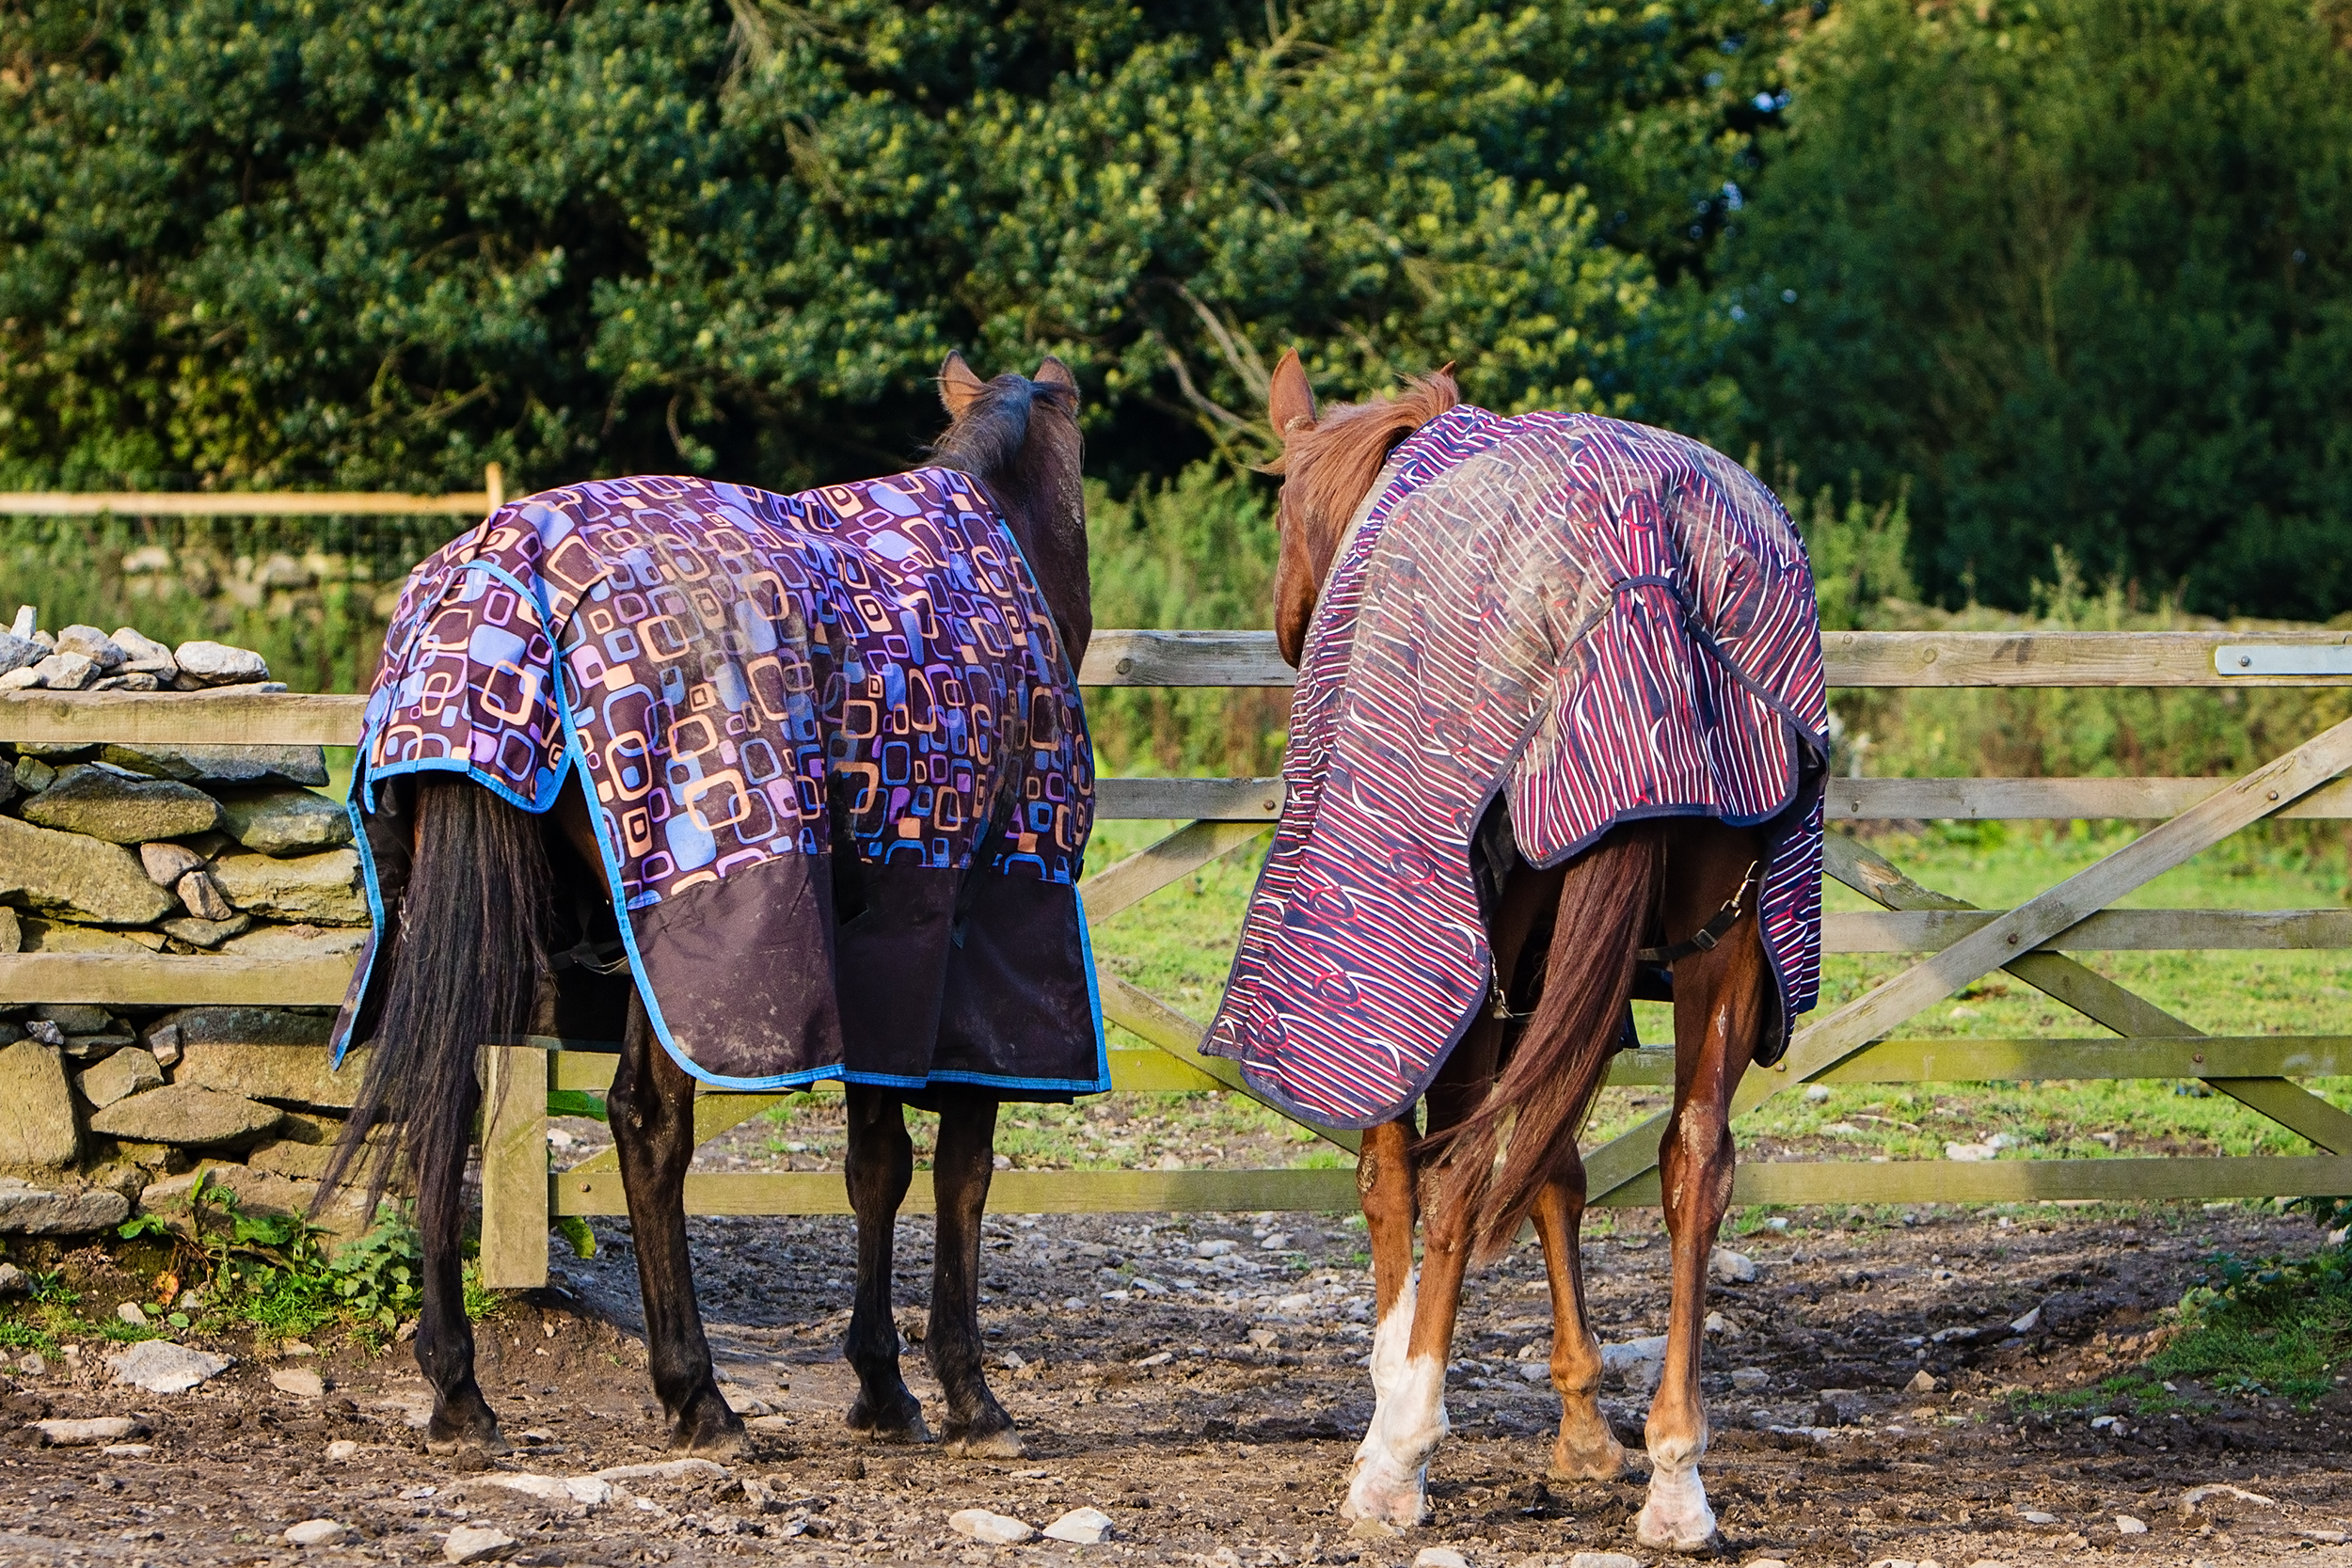 Rugs in the mid-September sun: Fashionable, indeed but not necessary for every horse.